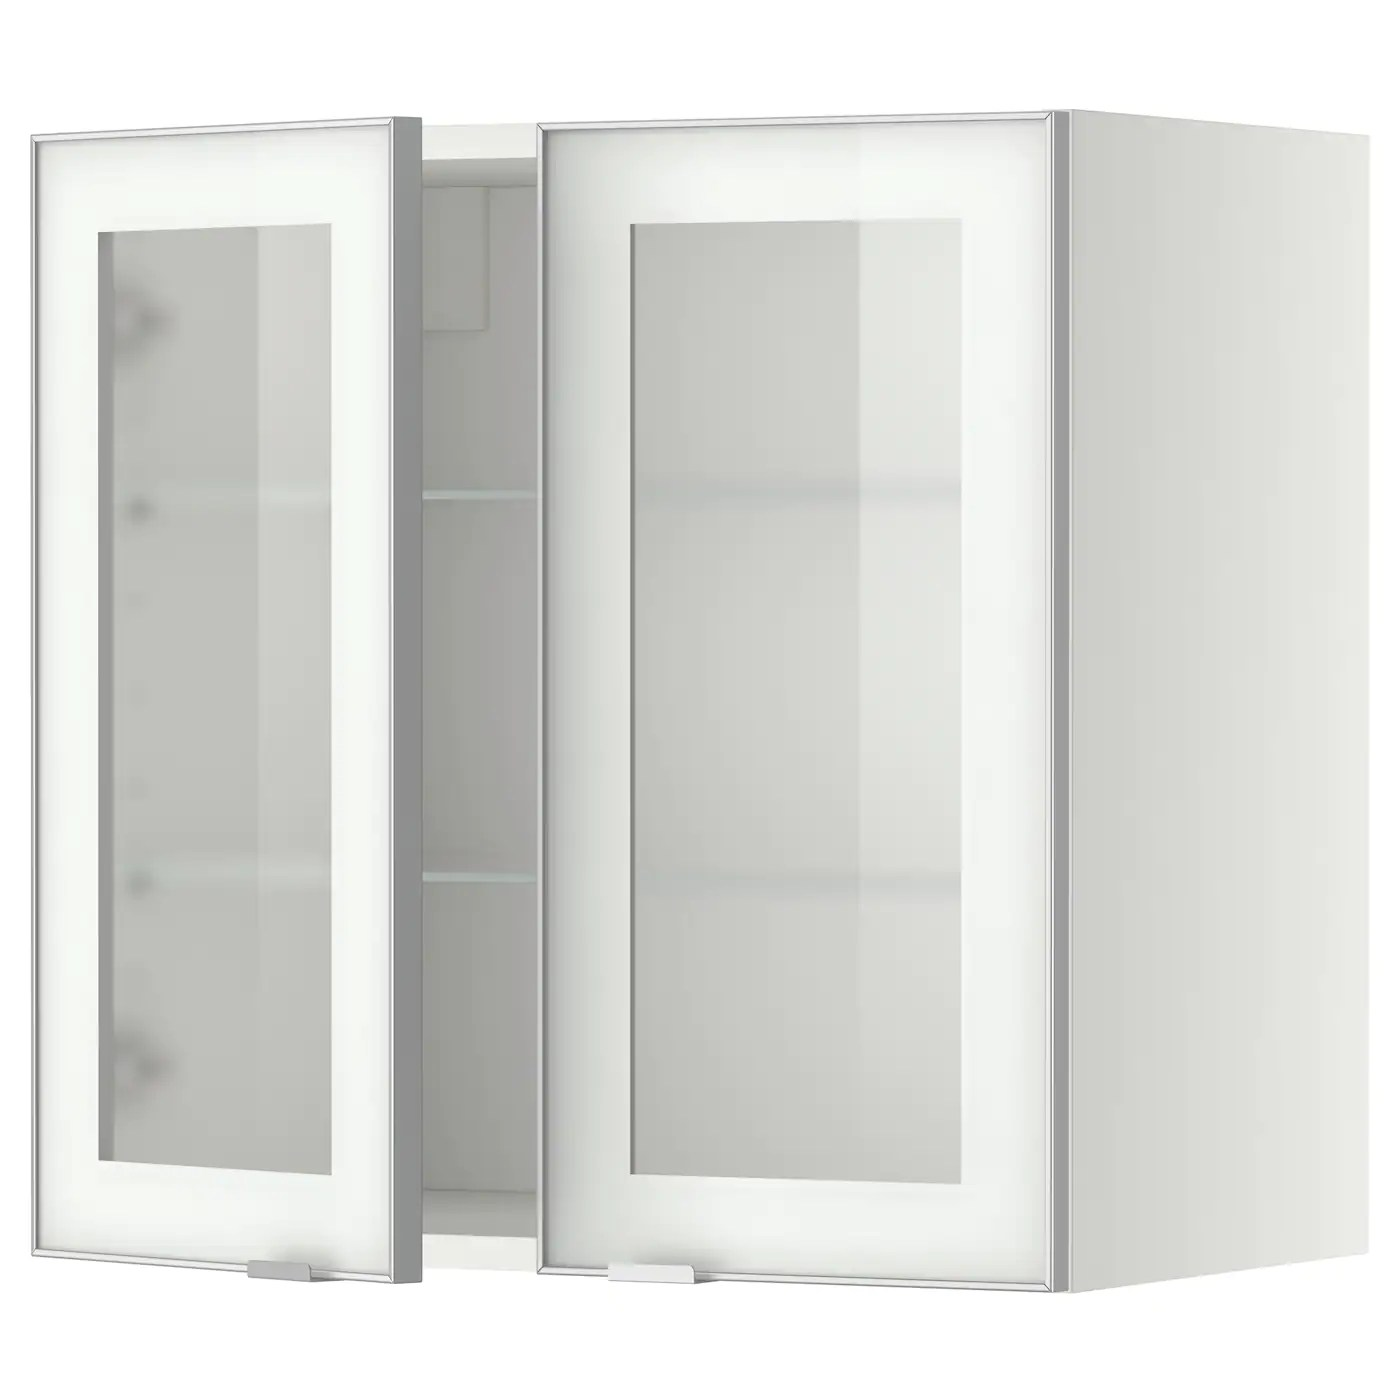 Schrank 60x60 Metod Wall Cabinet W Shelves 2 Glass Drs White Jutis